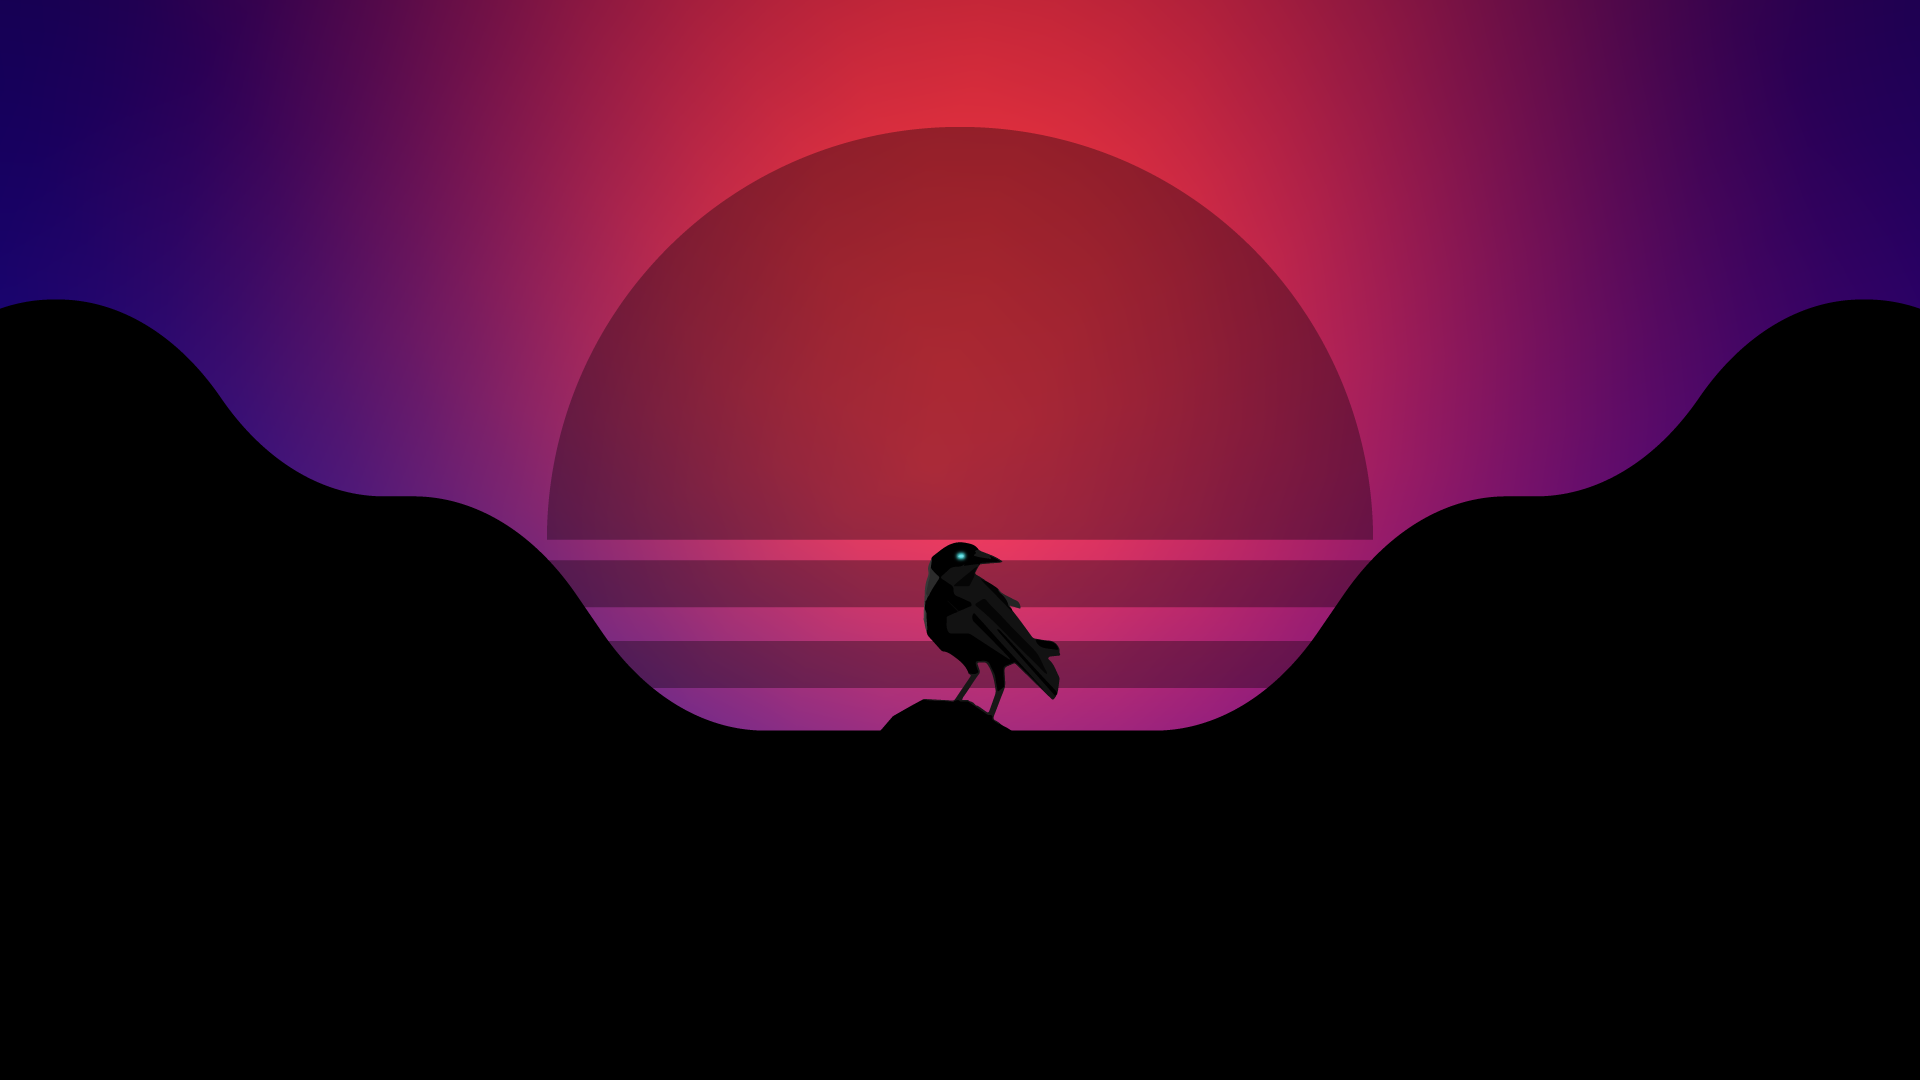 Synthwave style crow pc wallpaper 4k